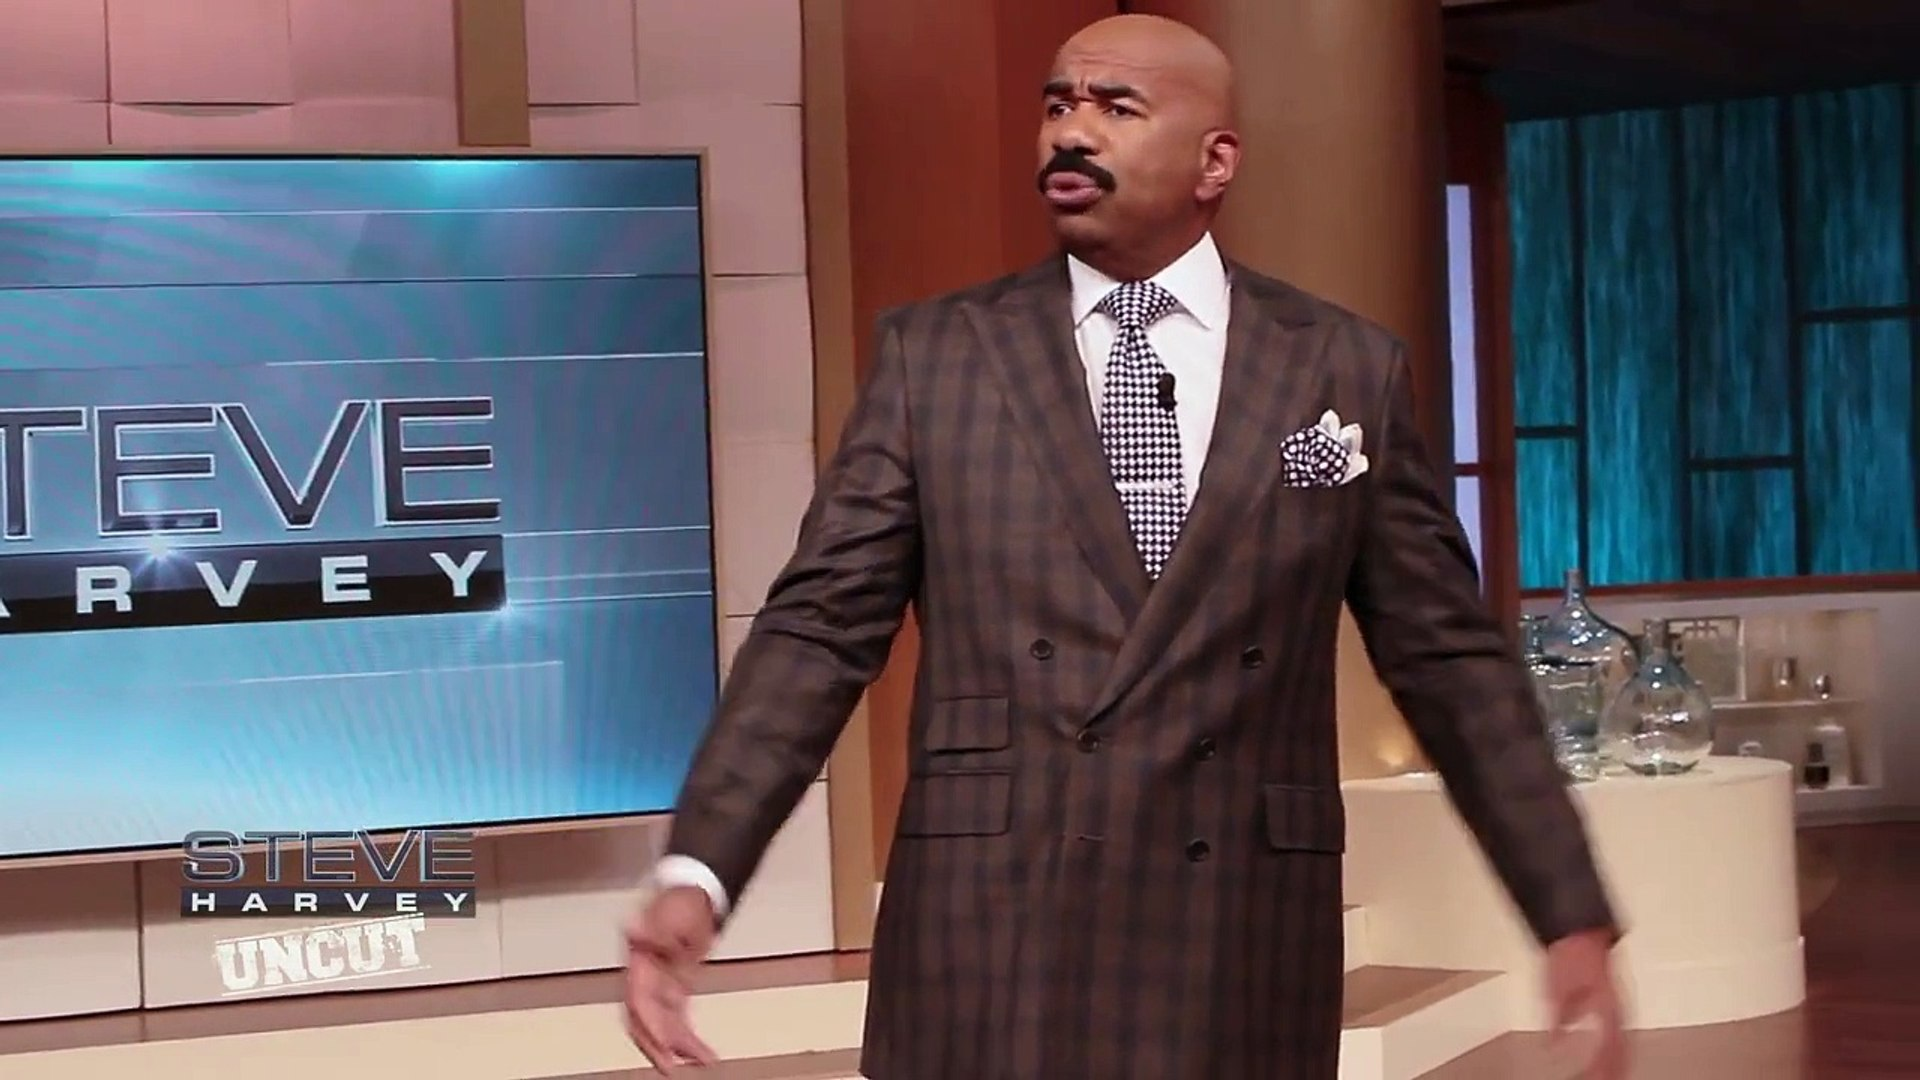 Steve Harvey Uncut: Live your gift, find your purpose || STEVE HARVEY